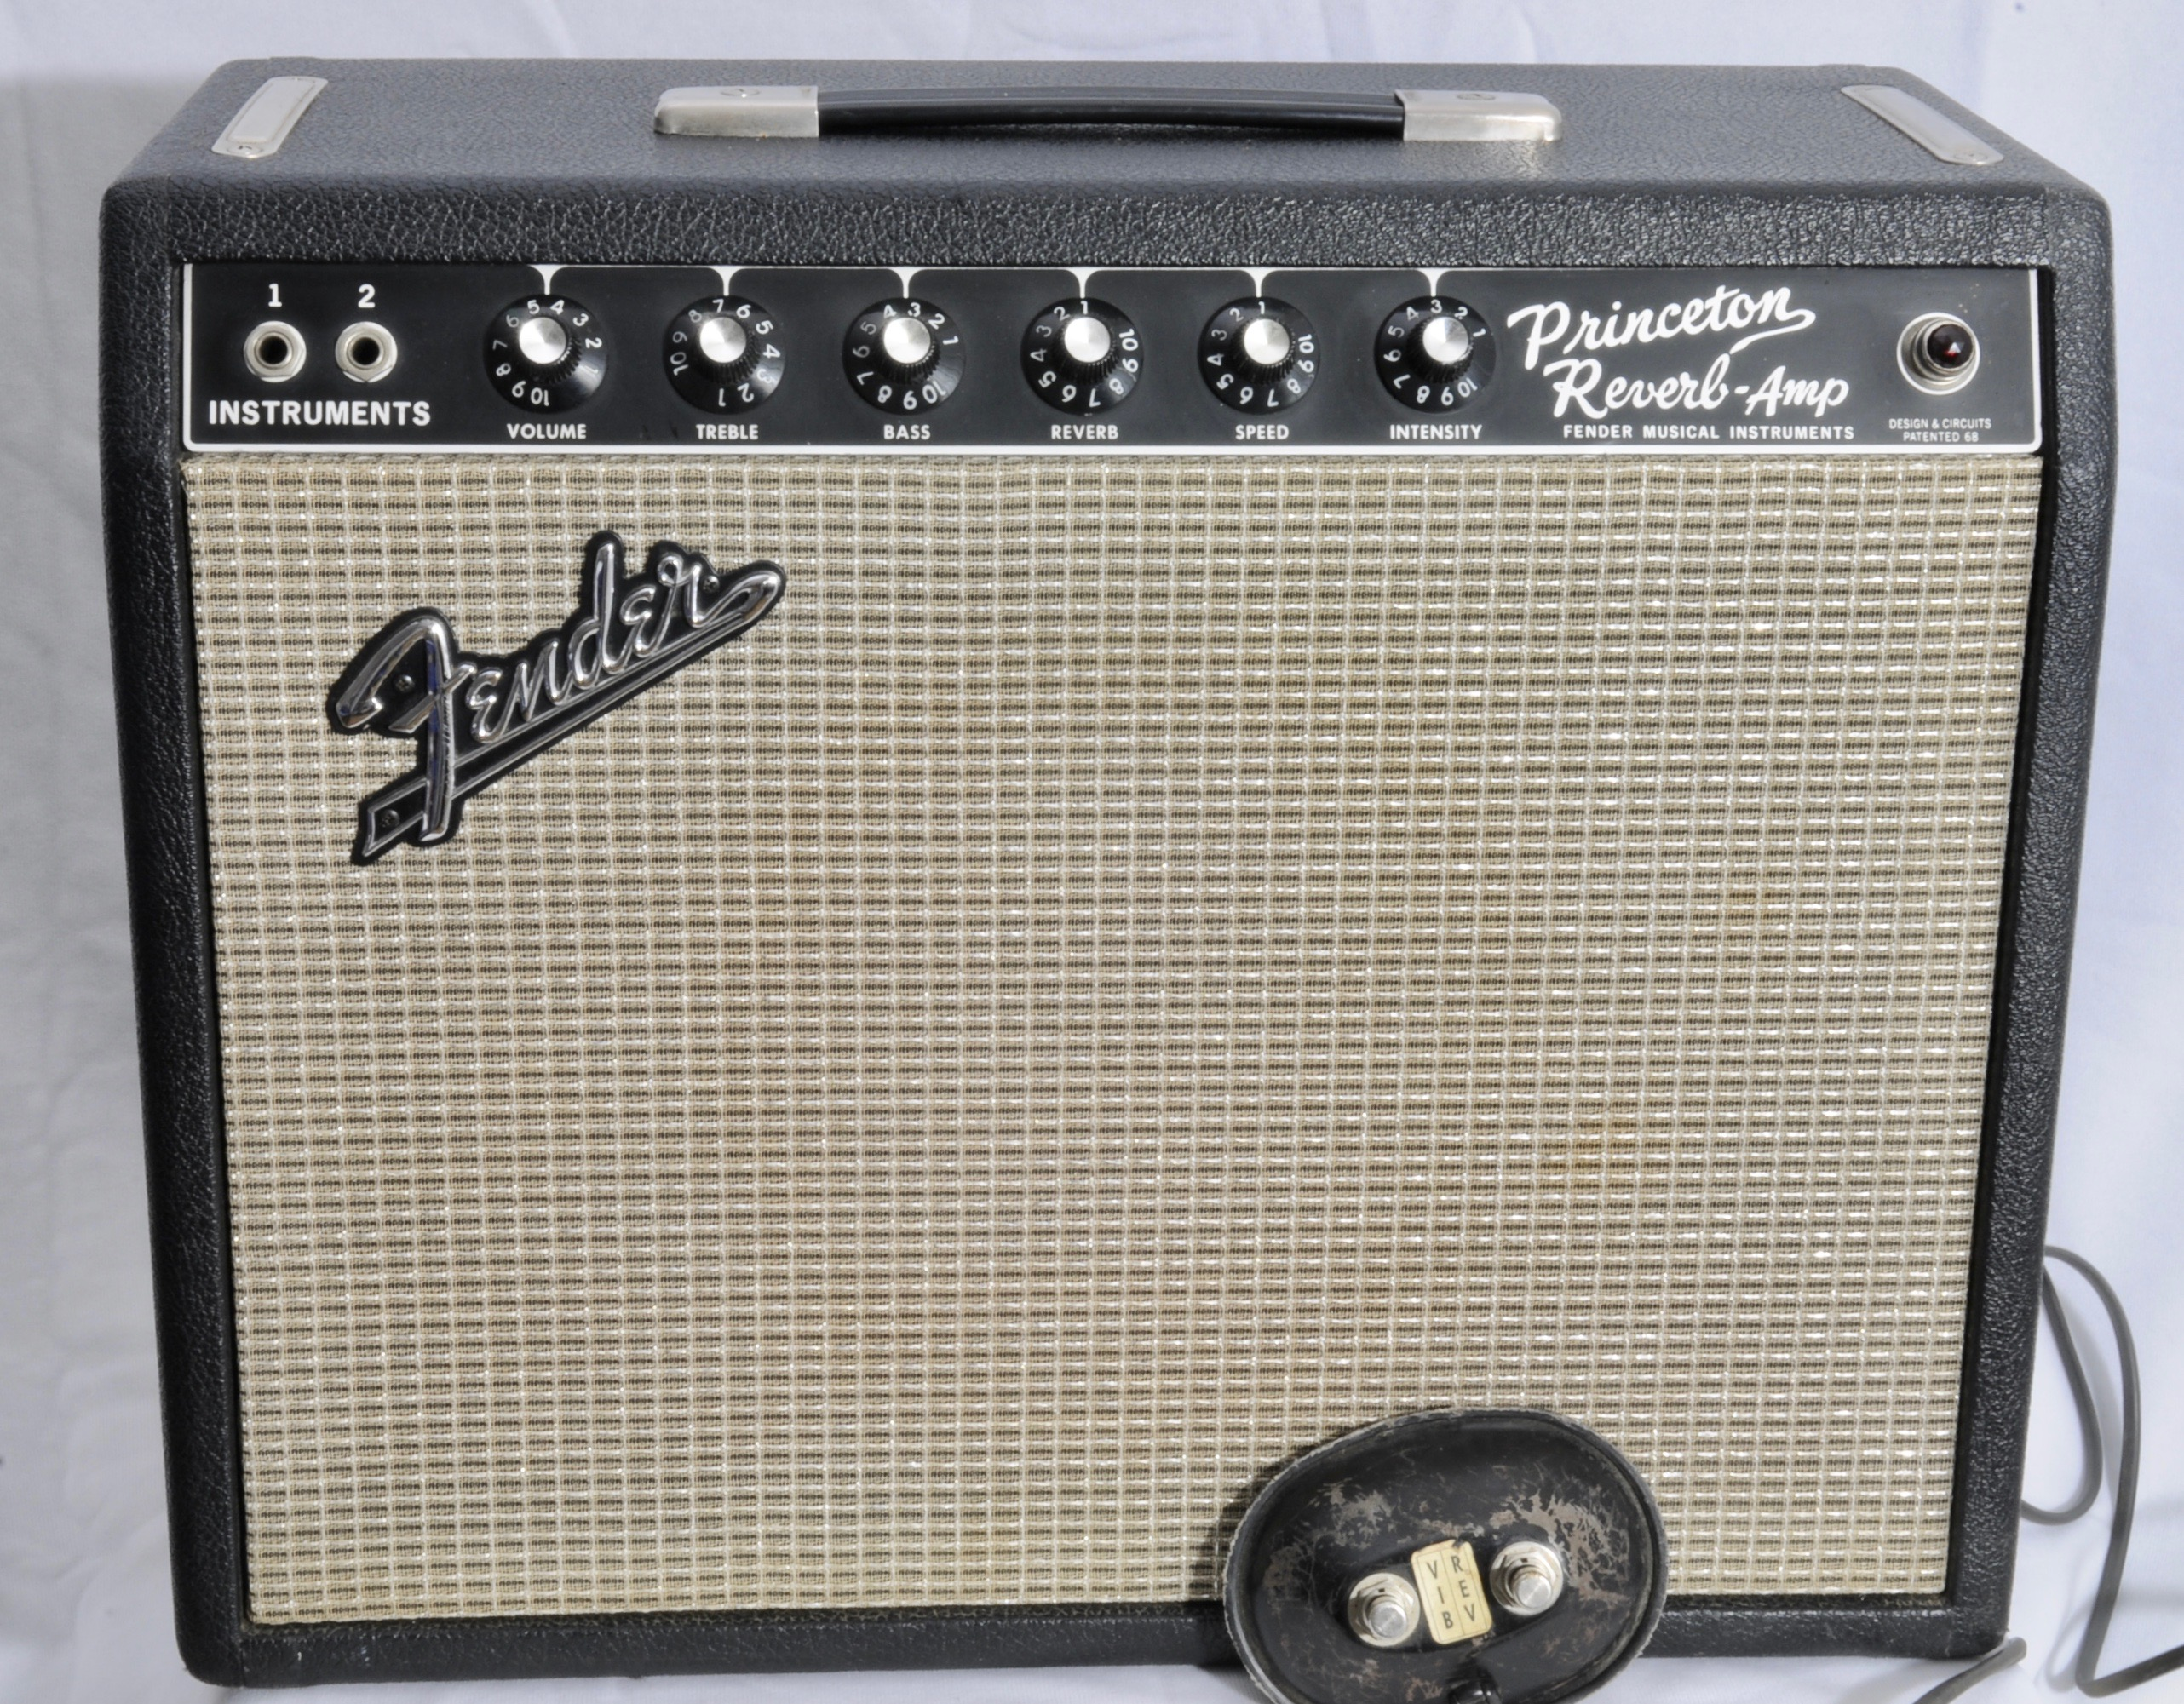 1966 Fender Princeton Reverb – Collector Clean